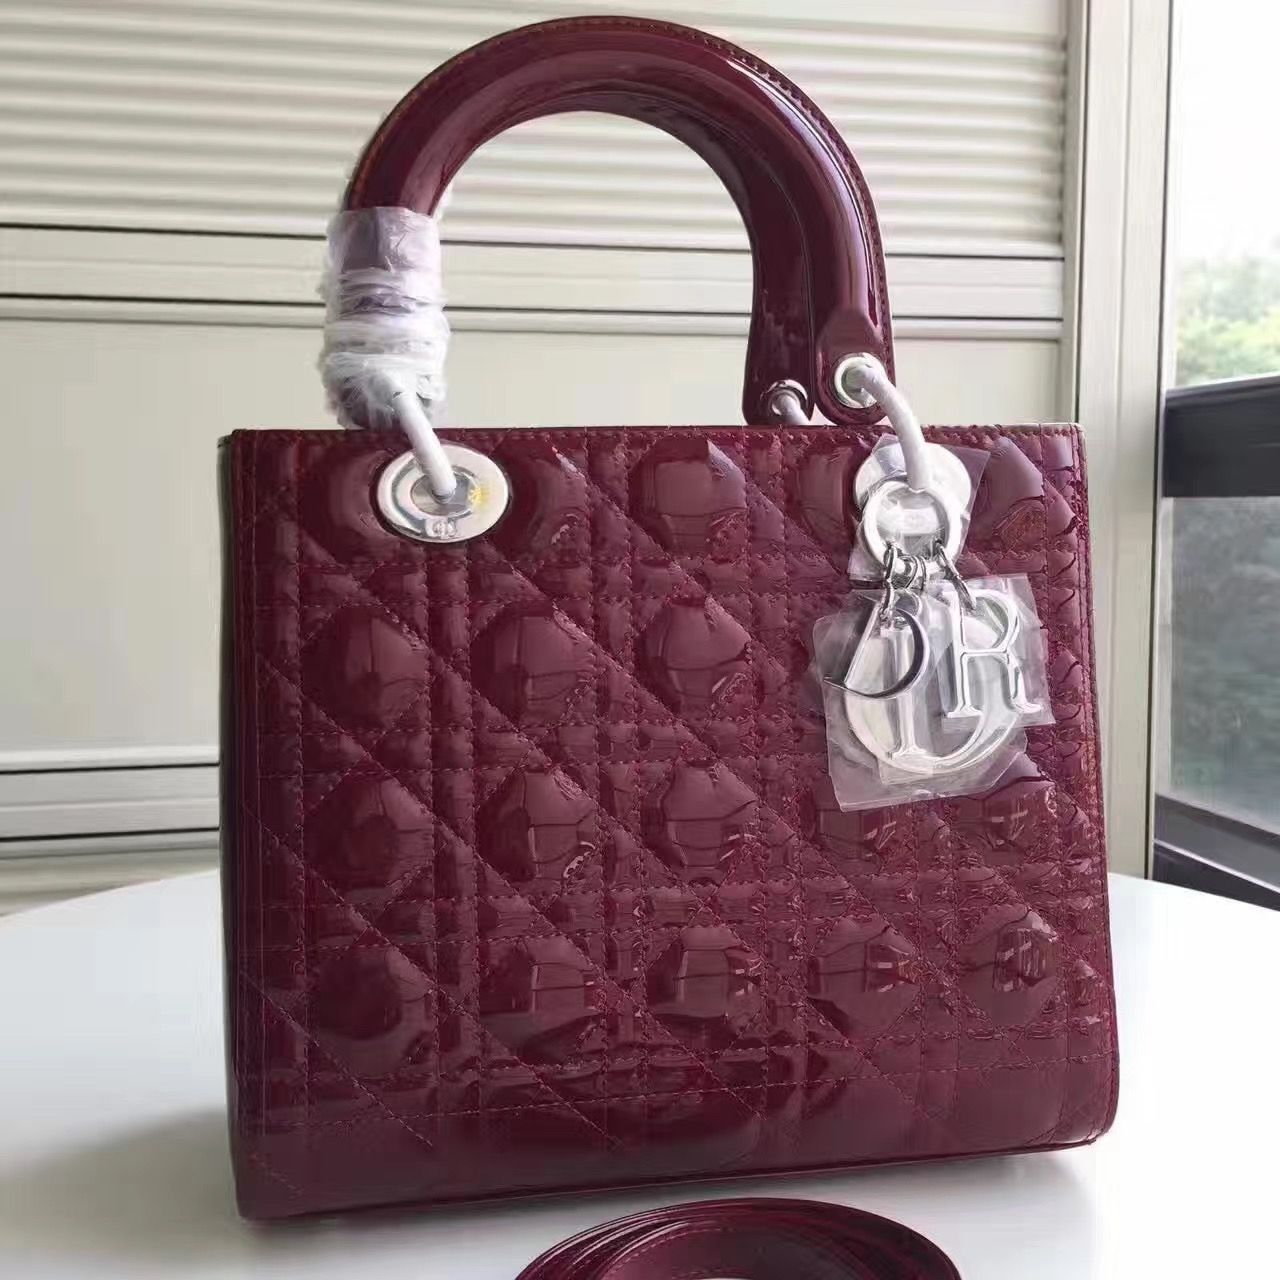 Dior Lady Dior Medium Bag In Patent Leather Burgundy (SH)  65e0cc494d3c6